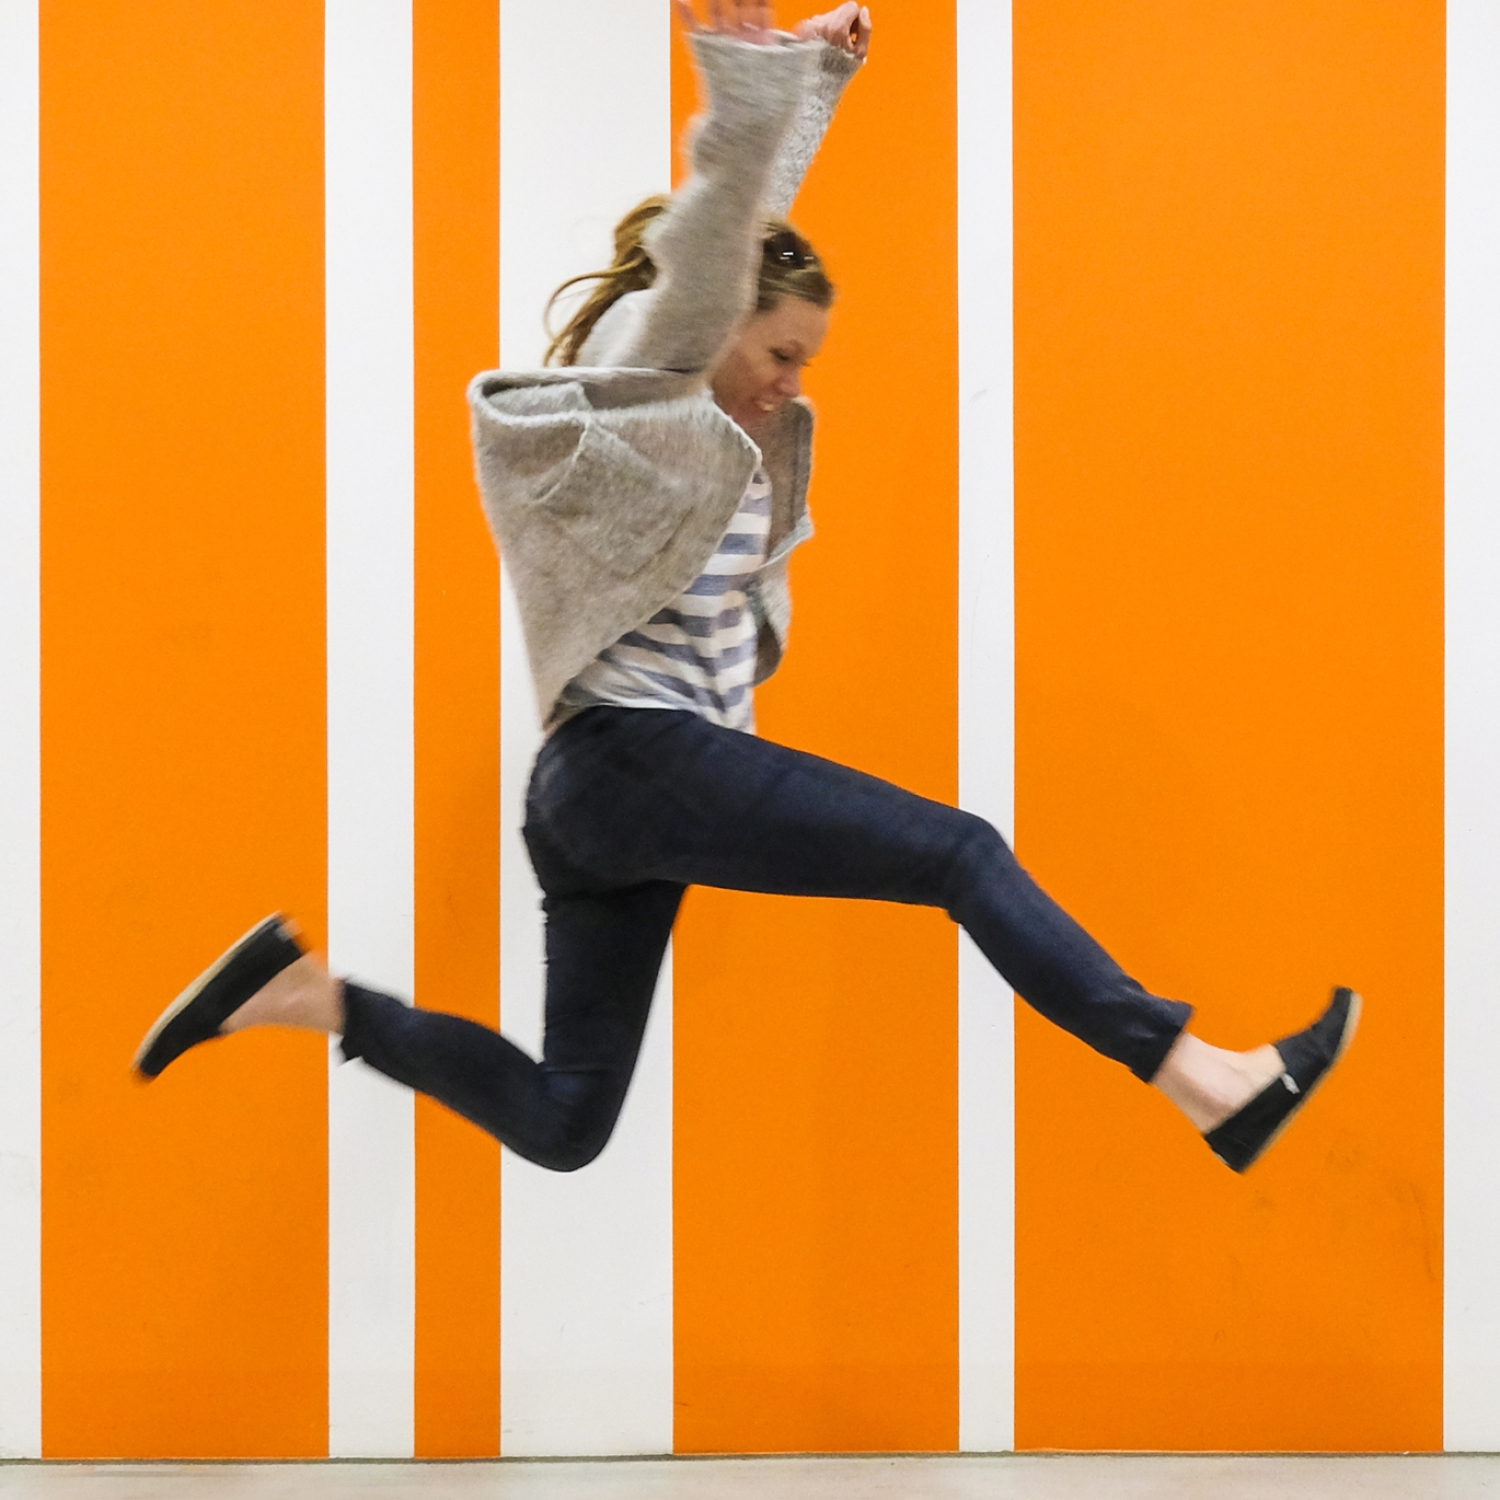 Woman jumping for joy against orange striped background